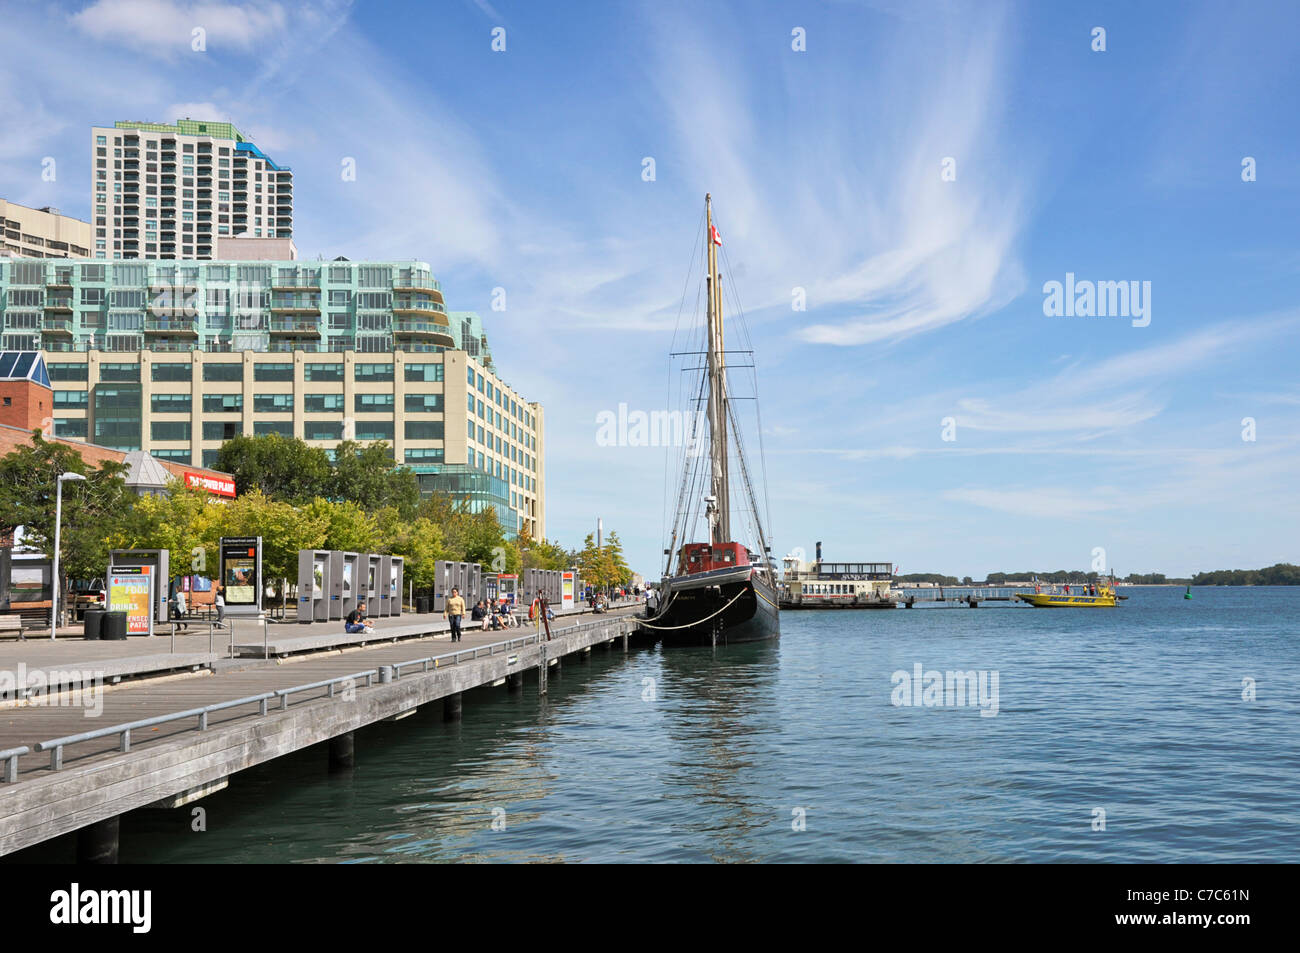 Toronto Harbourfront, Queens Quay, Boats and Luxury Condos on the Waterfront - Stock Image